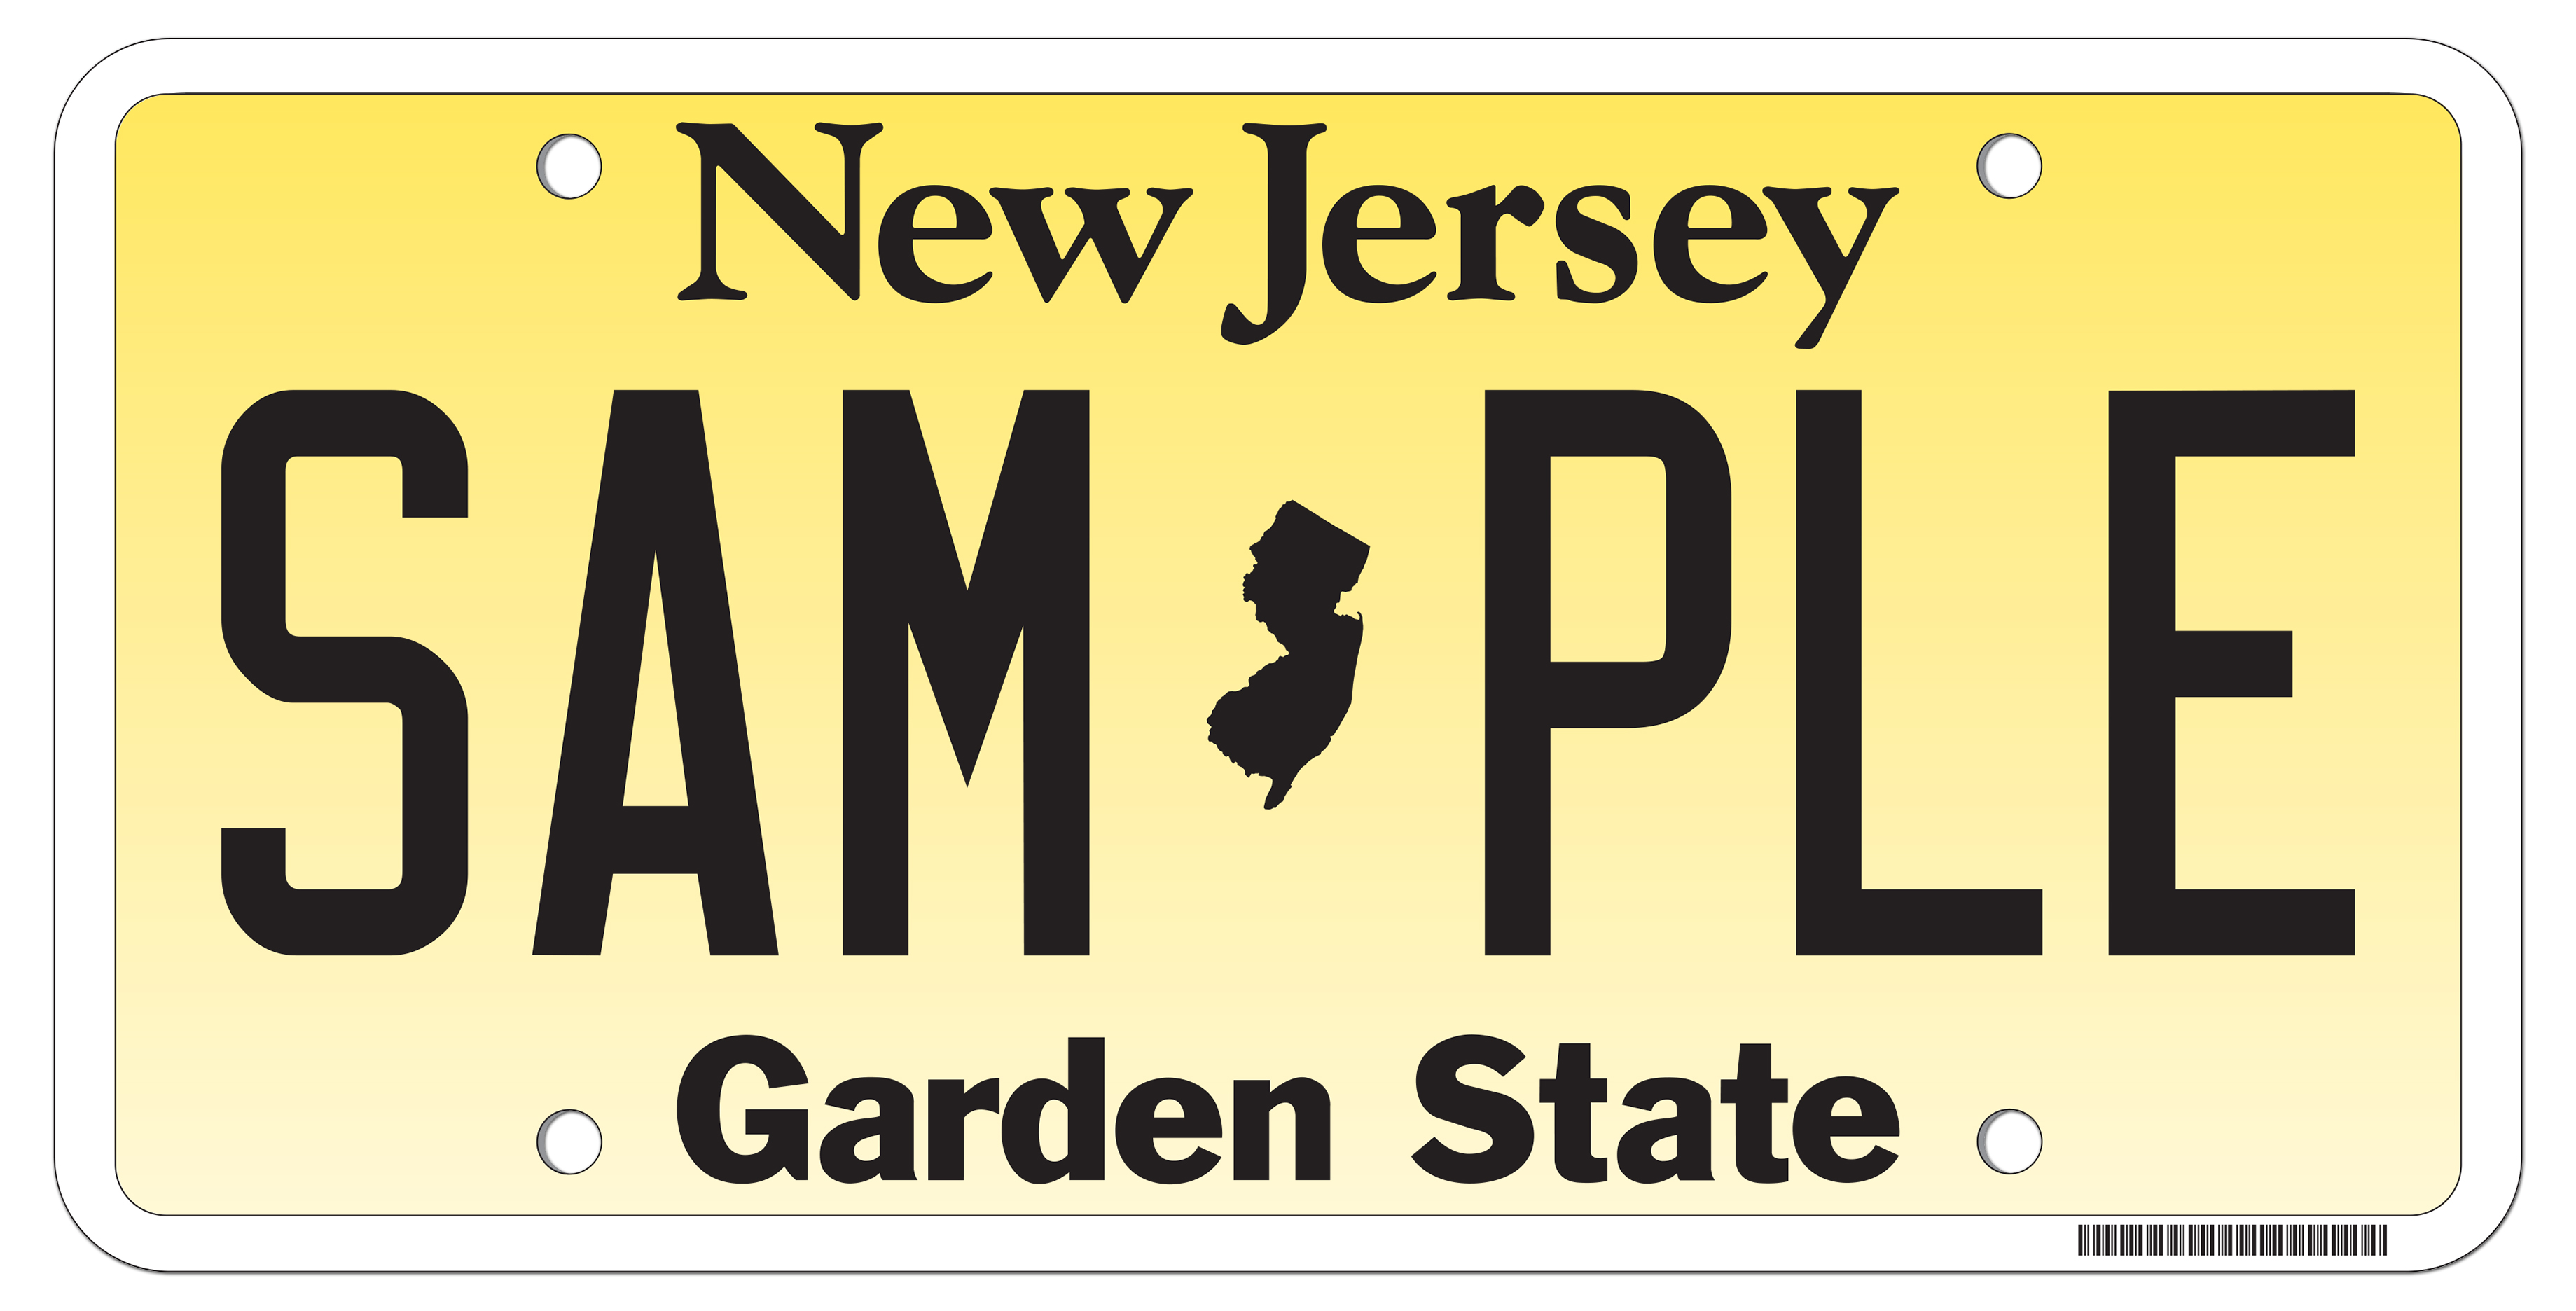 New jersey motor vehicle commission standard issue plates for Nj motor vehicle commission vehicle inspection station secaucus nj